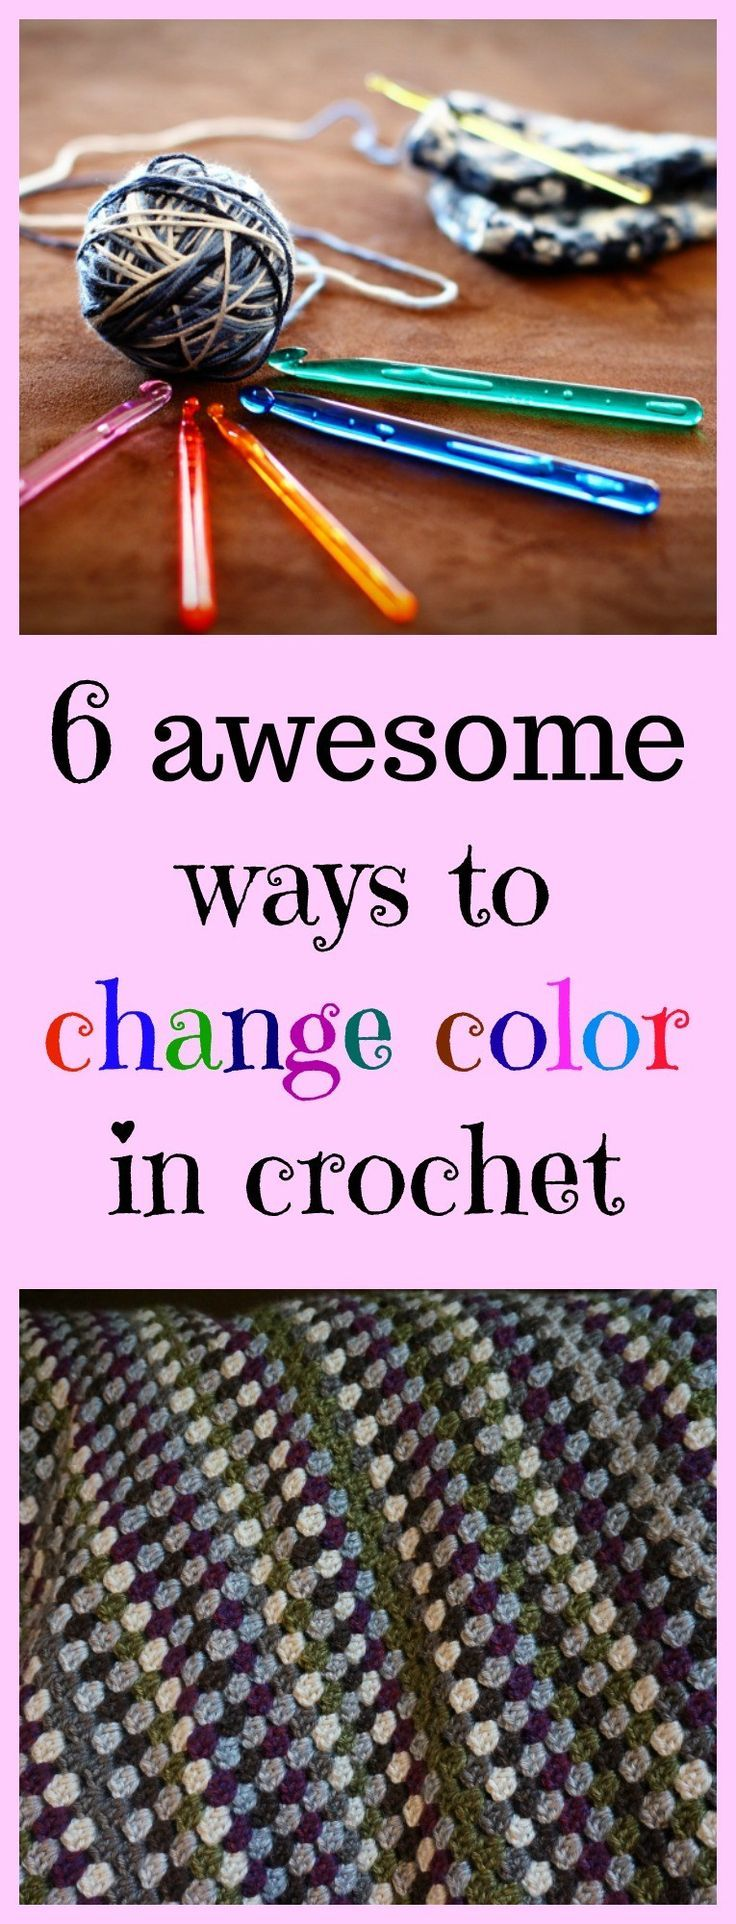 6 awesome ways to change color in crochet